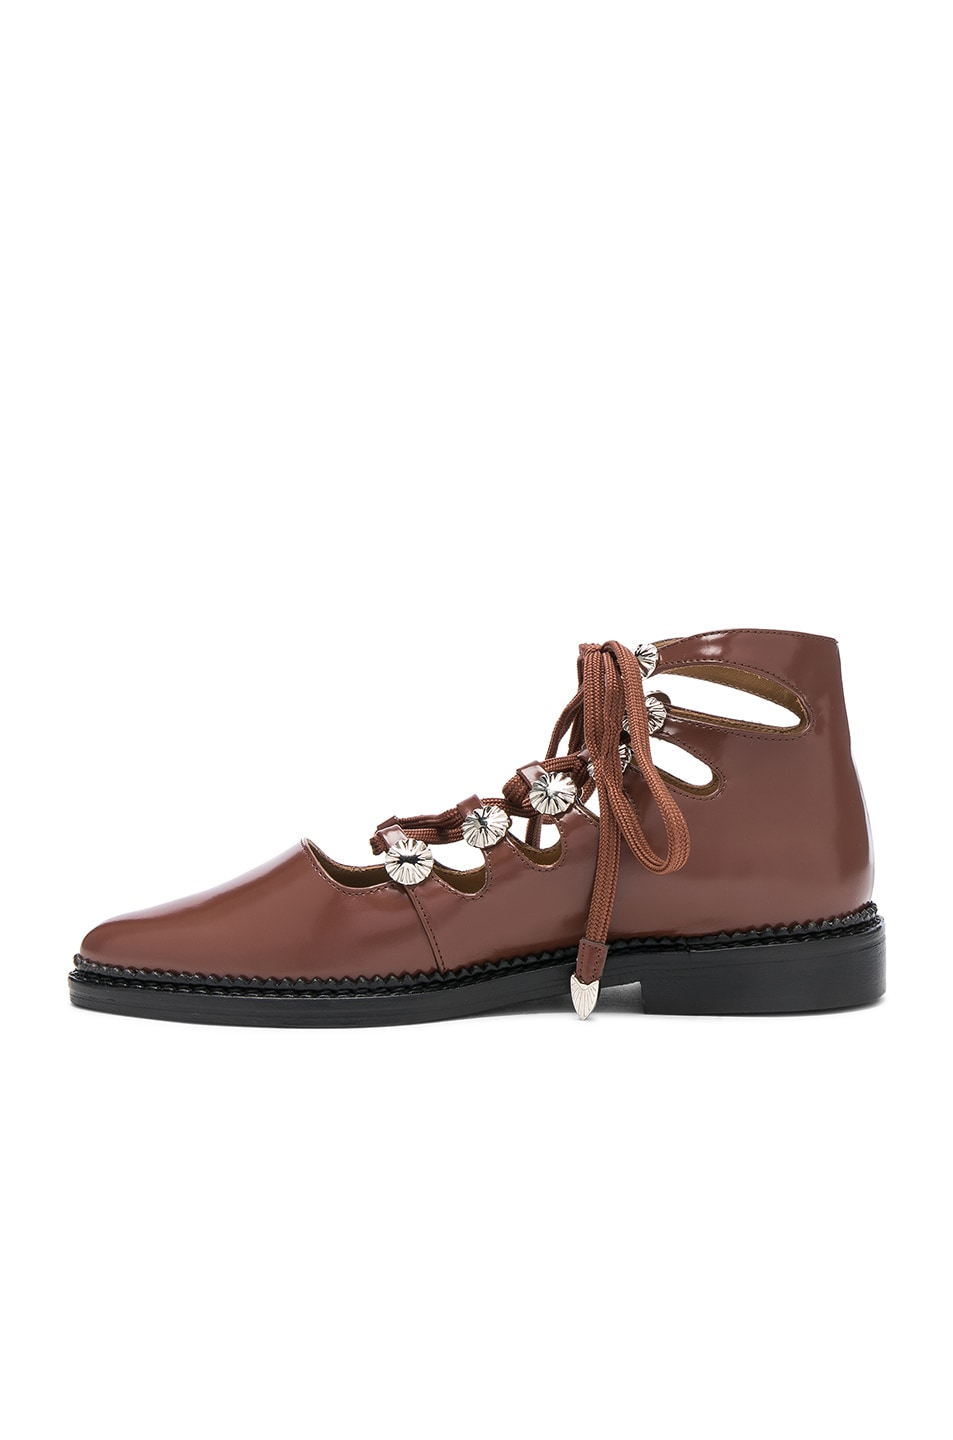 lace-up sneakers - Brown Toga Archives 6ehc2w5